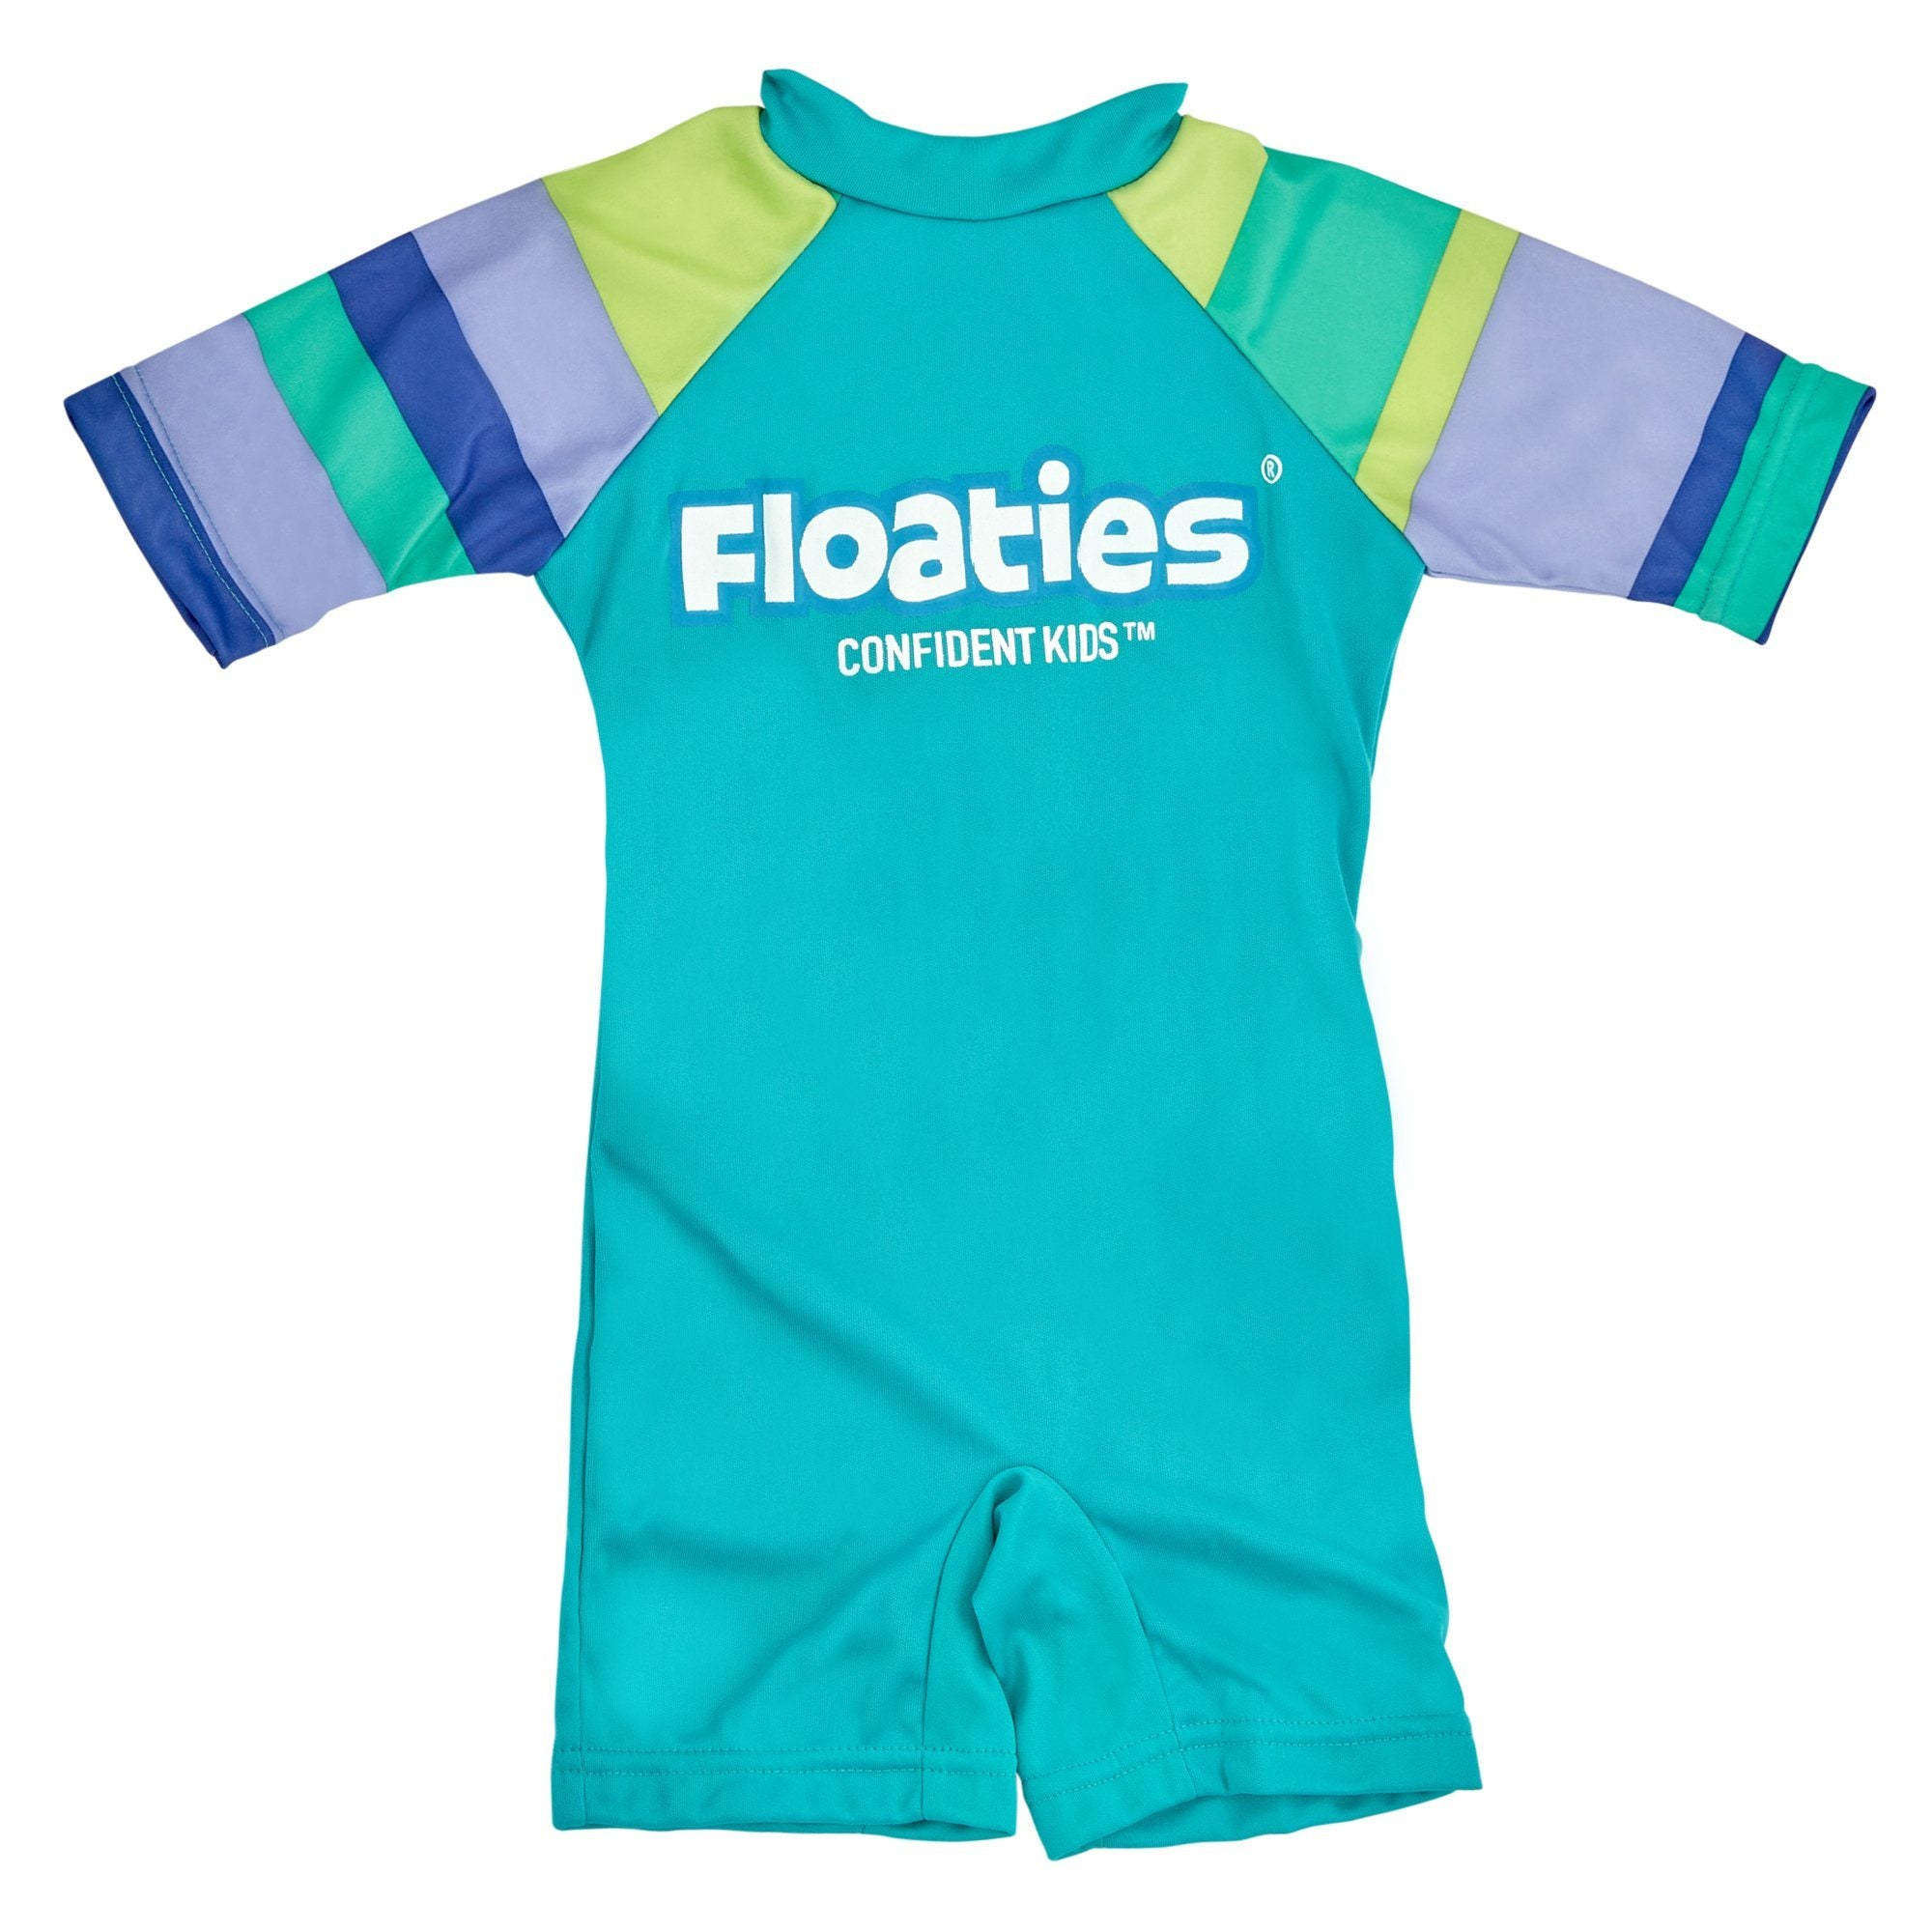 Floaties Swim Suit Neutral Green 2 To 3 Toys Isbister & Co Wholesale